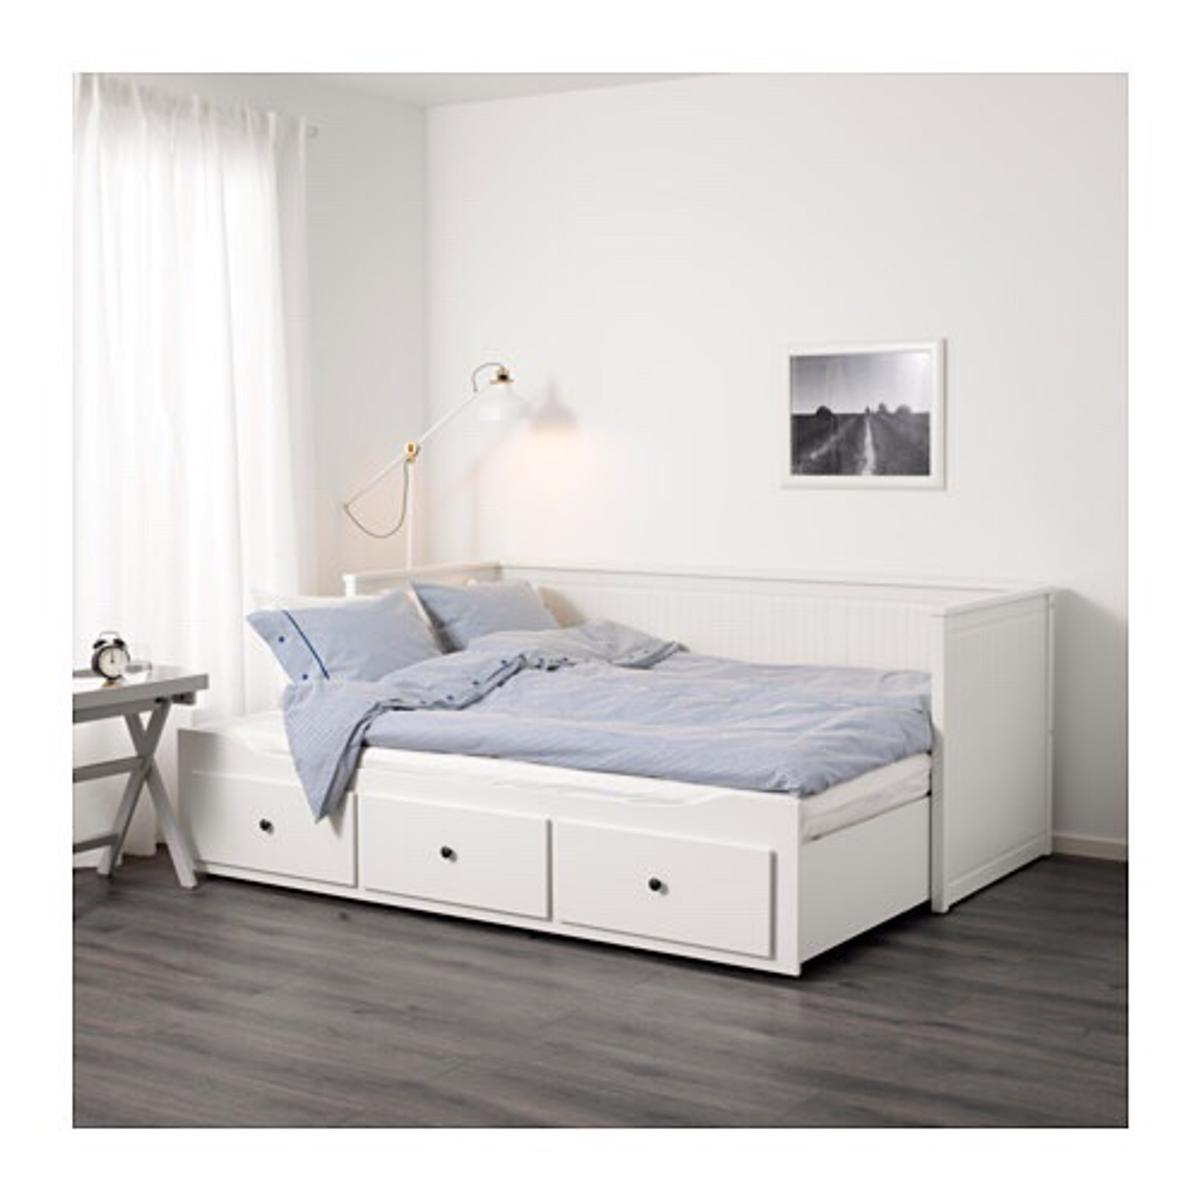 Ikea Betten Gut Weißes Ikea Bett In 63457 Hanau For 65 00 For Sale Shpock